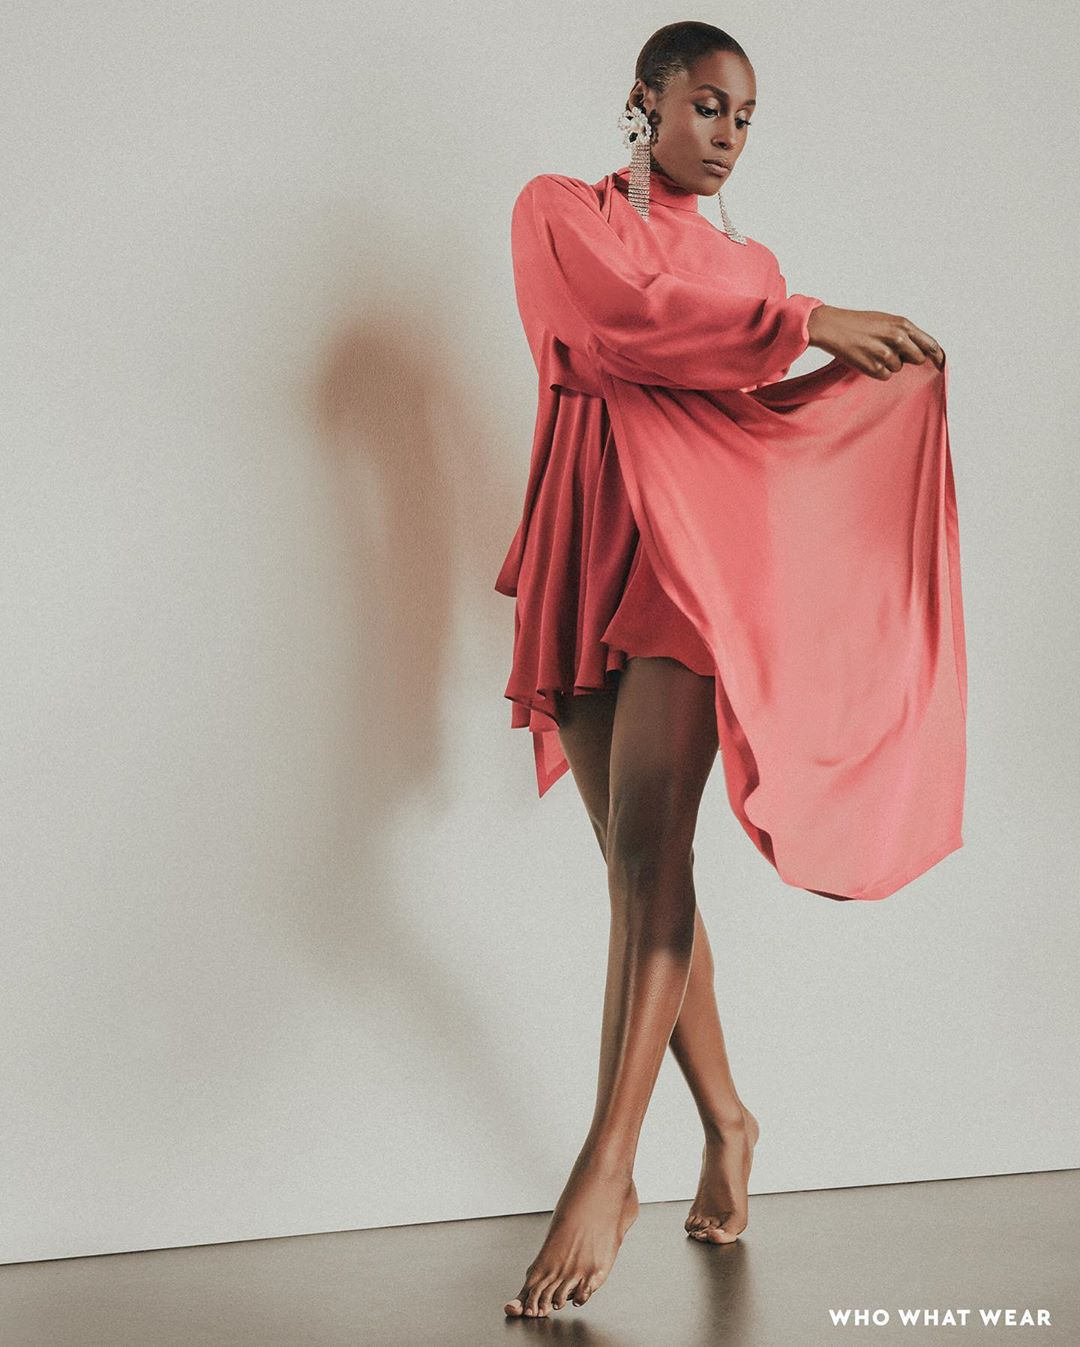 Issa Rae Is The Cover-Star Of Who What Wear's February Issue